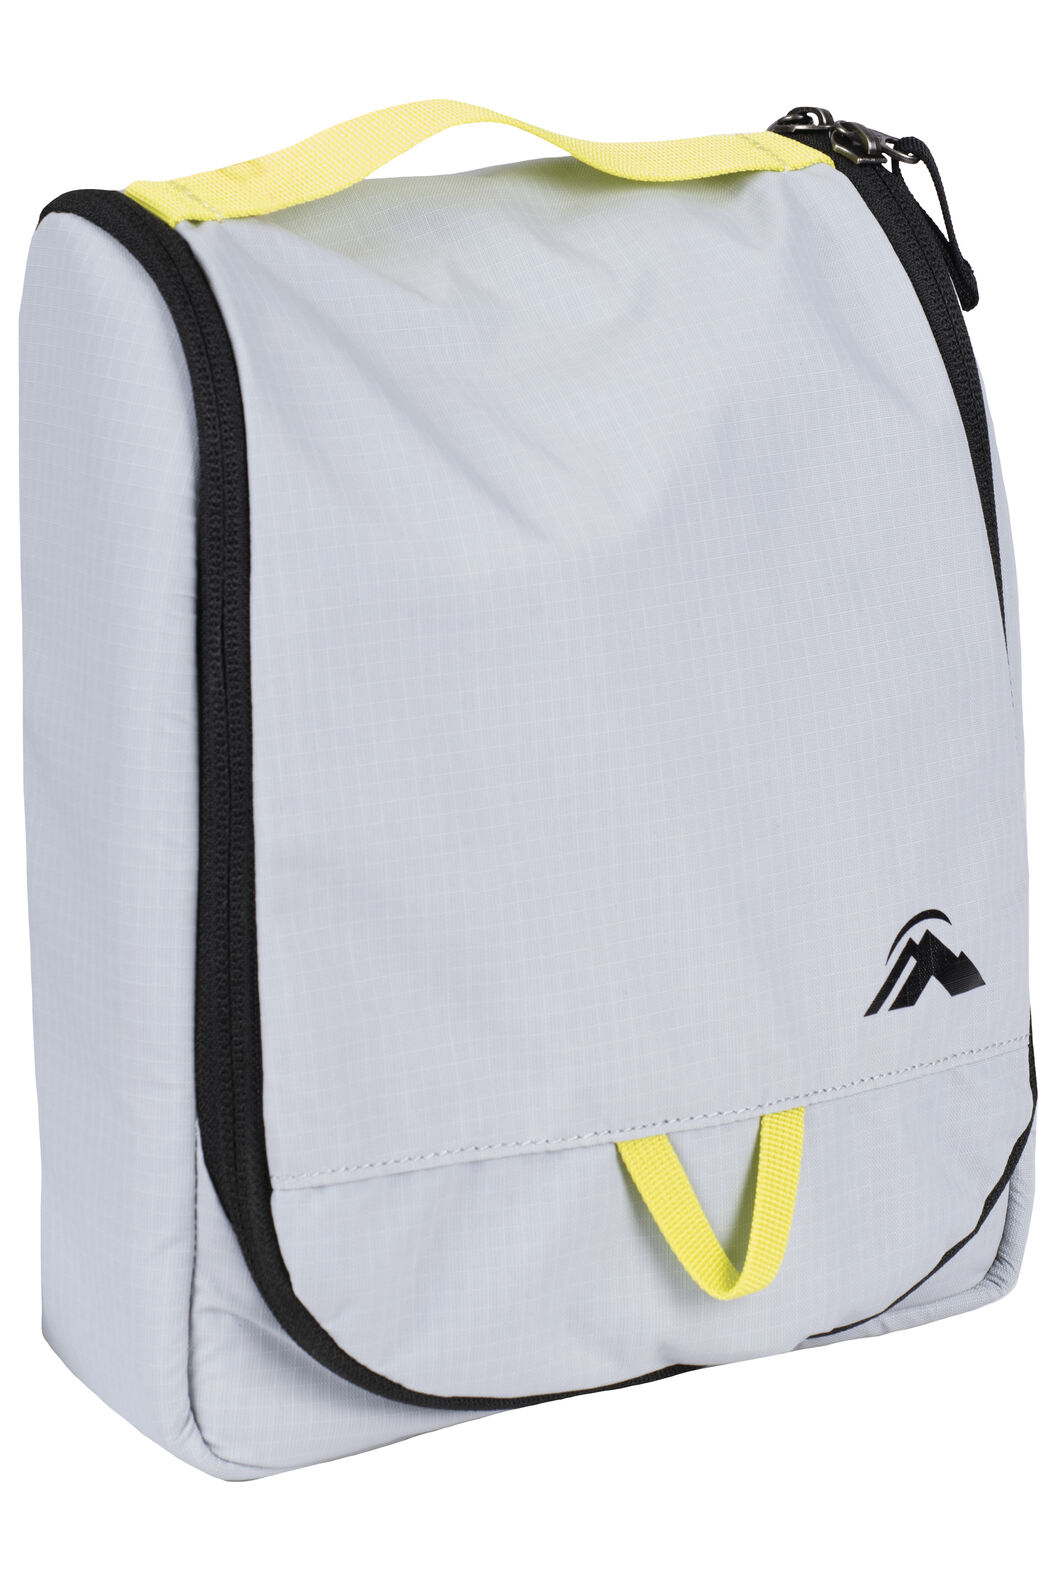 Macpac Hangout Wash Bag, Alloy, hi-res